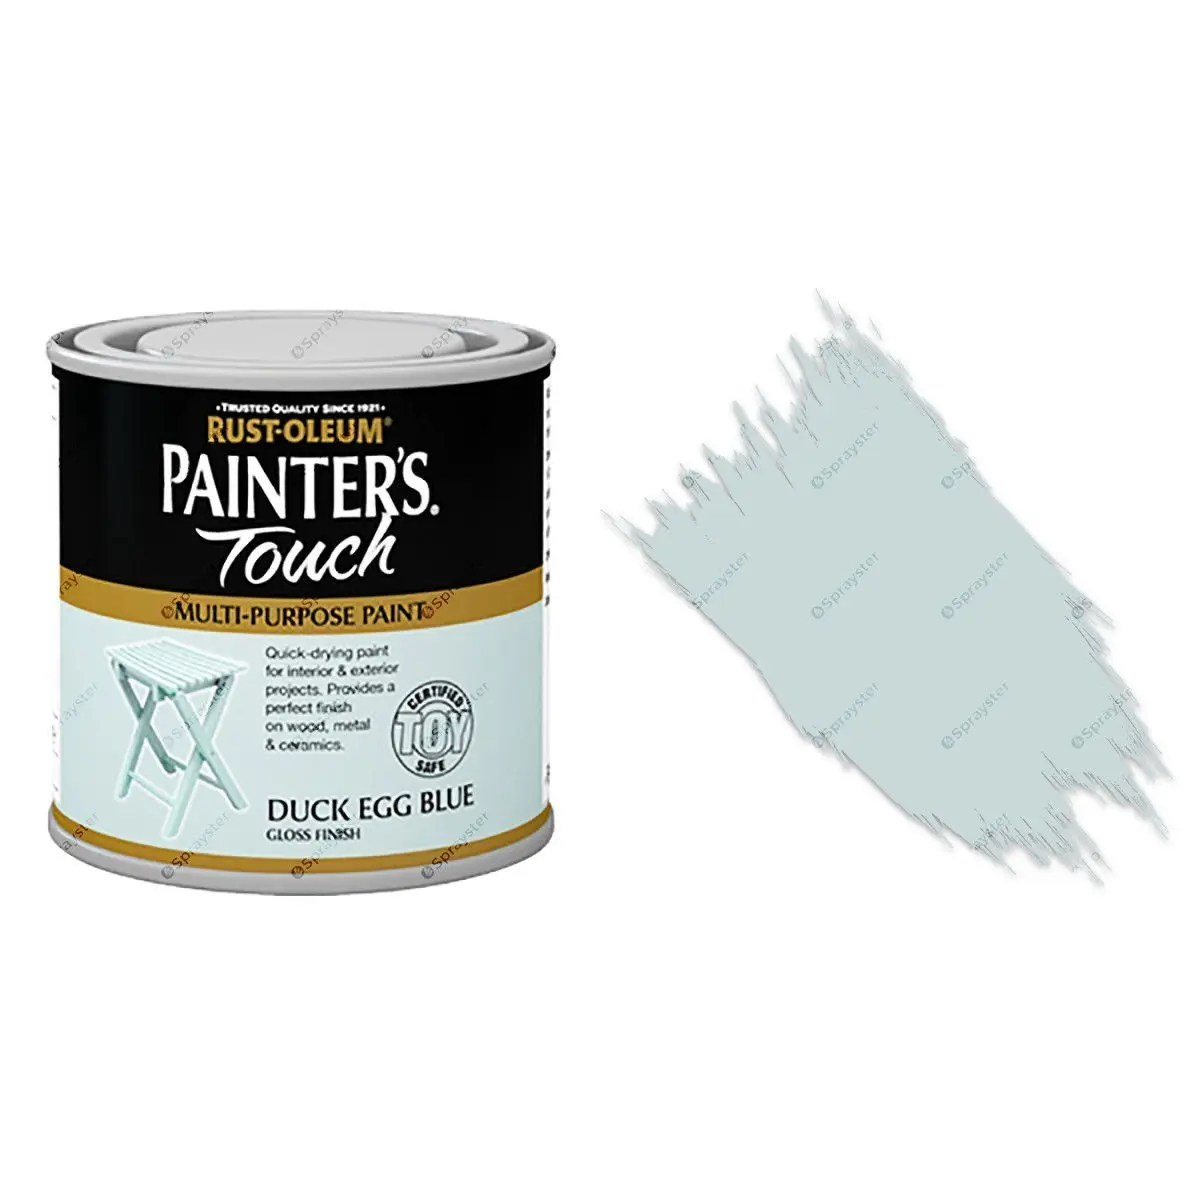 Rust-Oleum-Painters-Touch-Multi-Surface-Paint-Duck-Egg-Blue-Gloss-250ml-Toy-Safe-391992432271